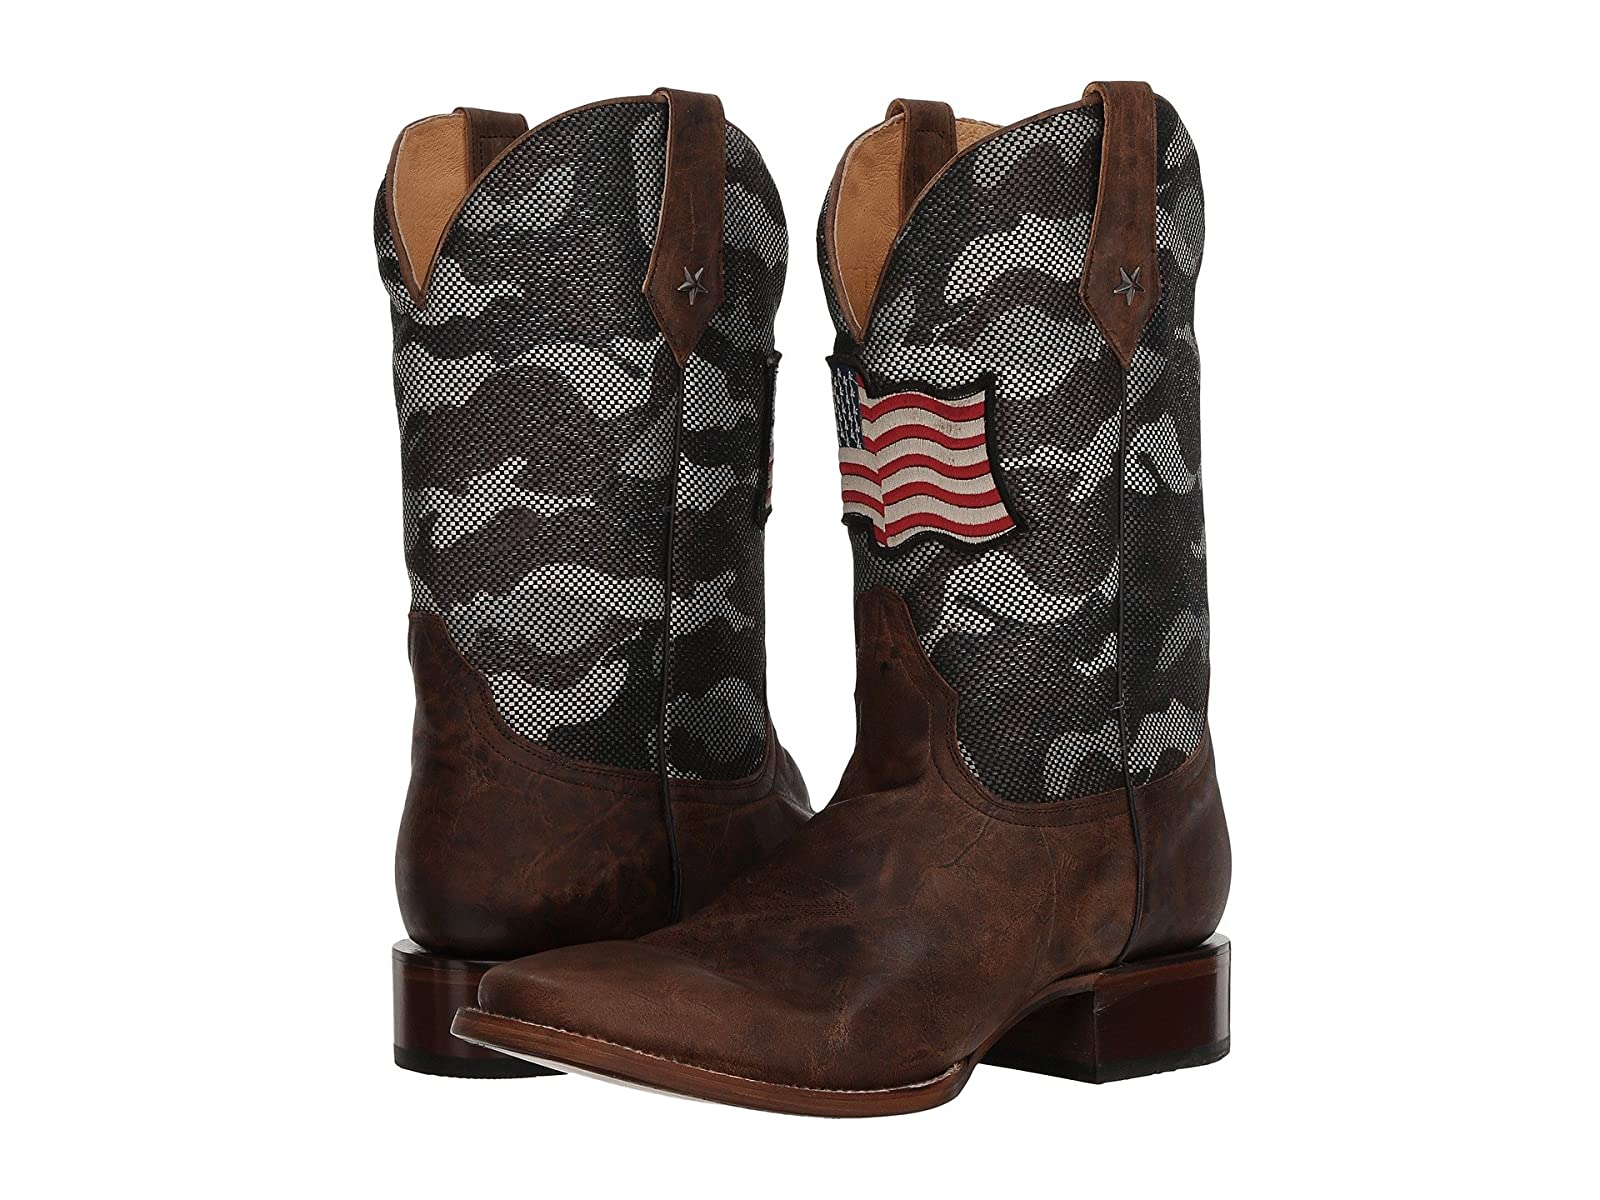 Roper American CamoEconomical and quality shoes